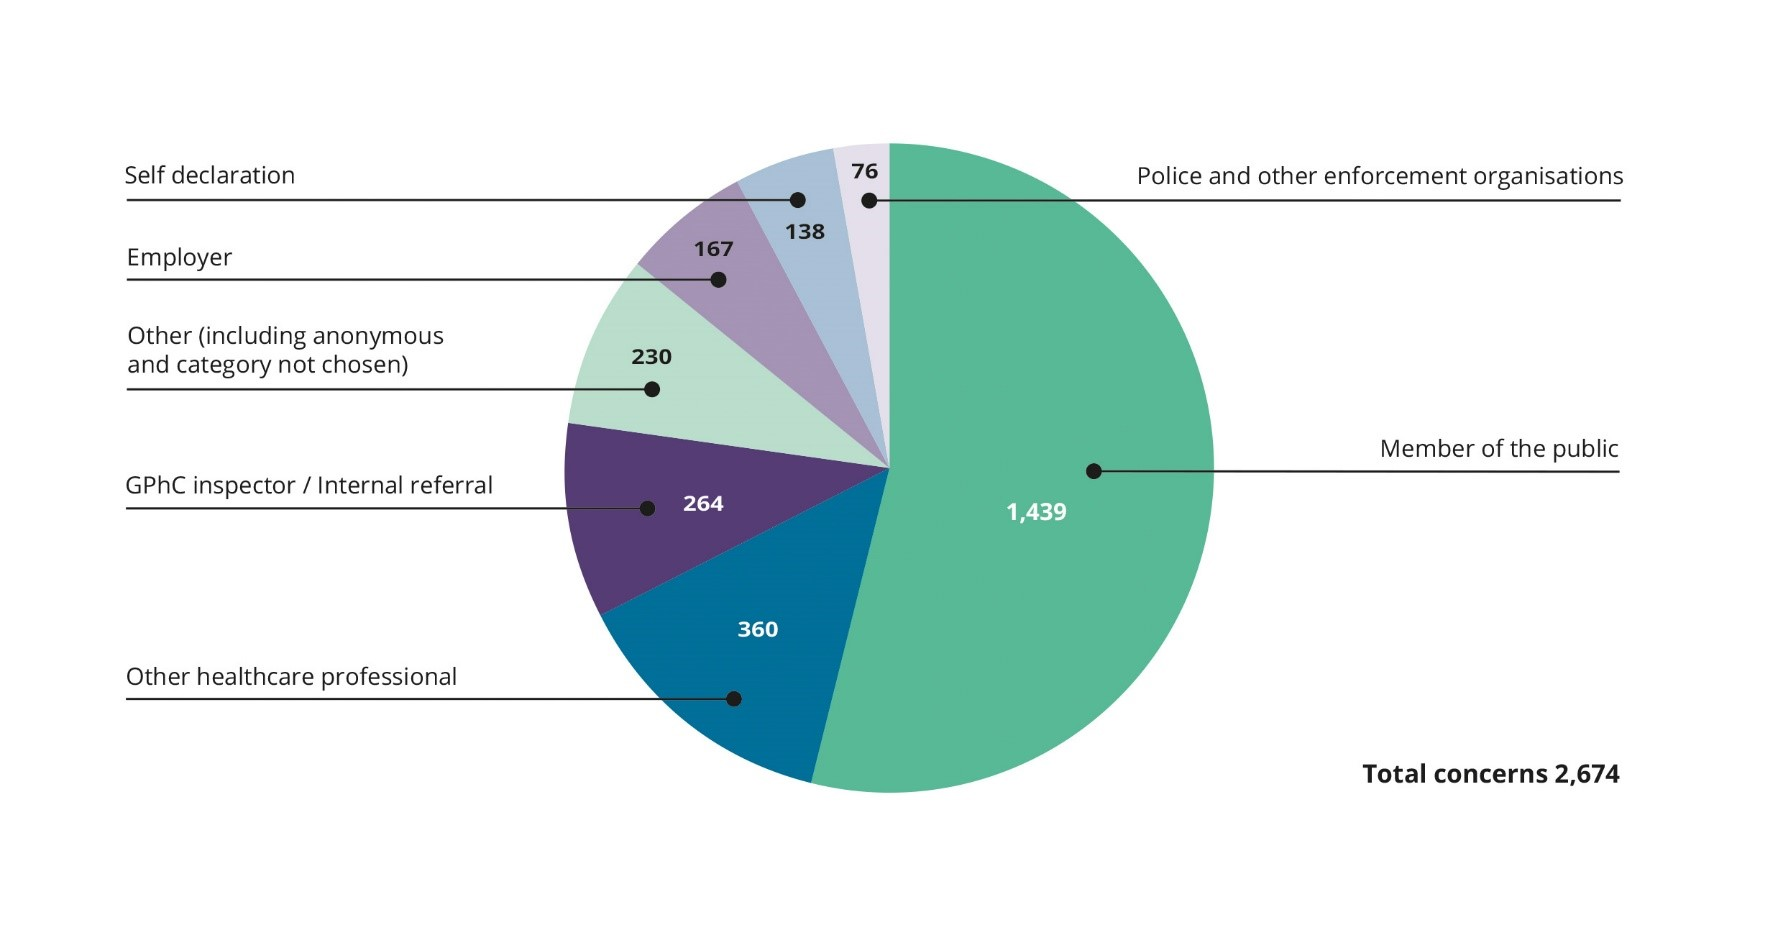 Employer 167, GPhC inspector / internal referral 264, Member of the public 1439, Other (including anonymous and 'category not chosen') 230, Other healthcare professional 360, Police and other enforcement organisations 76, Self-declaration 138, Total 2674